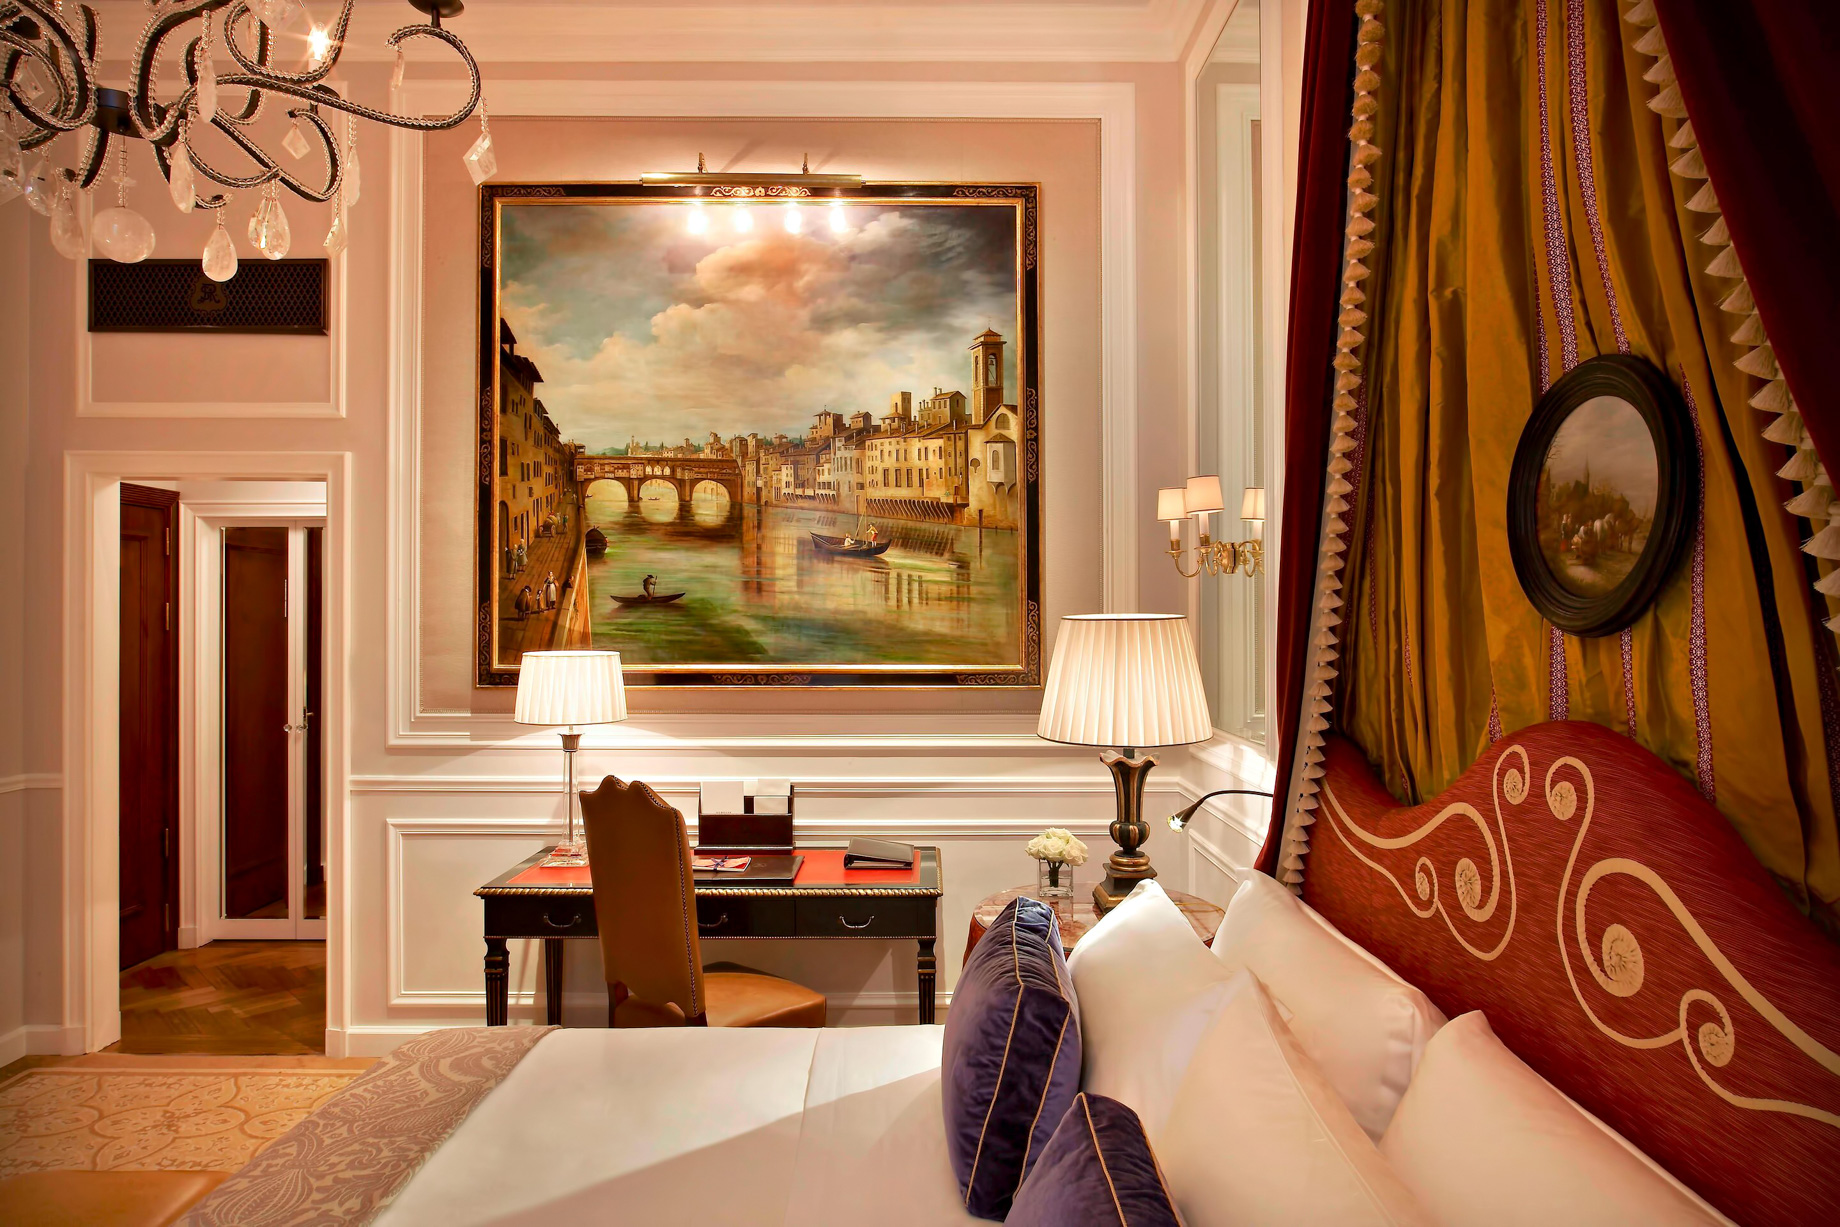 The St. Regis Florence Luxury Hotel - Florence, Italy - Deluxe Room Medici style